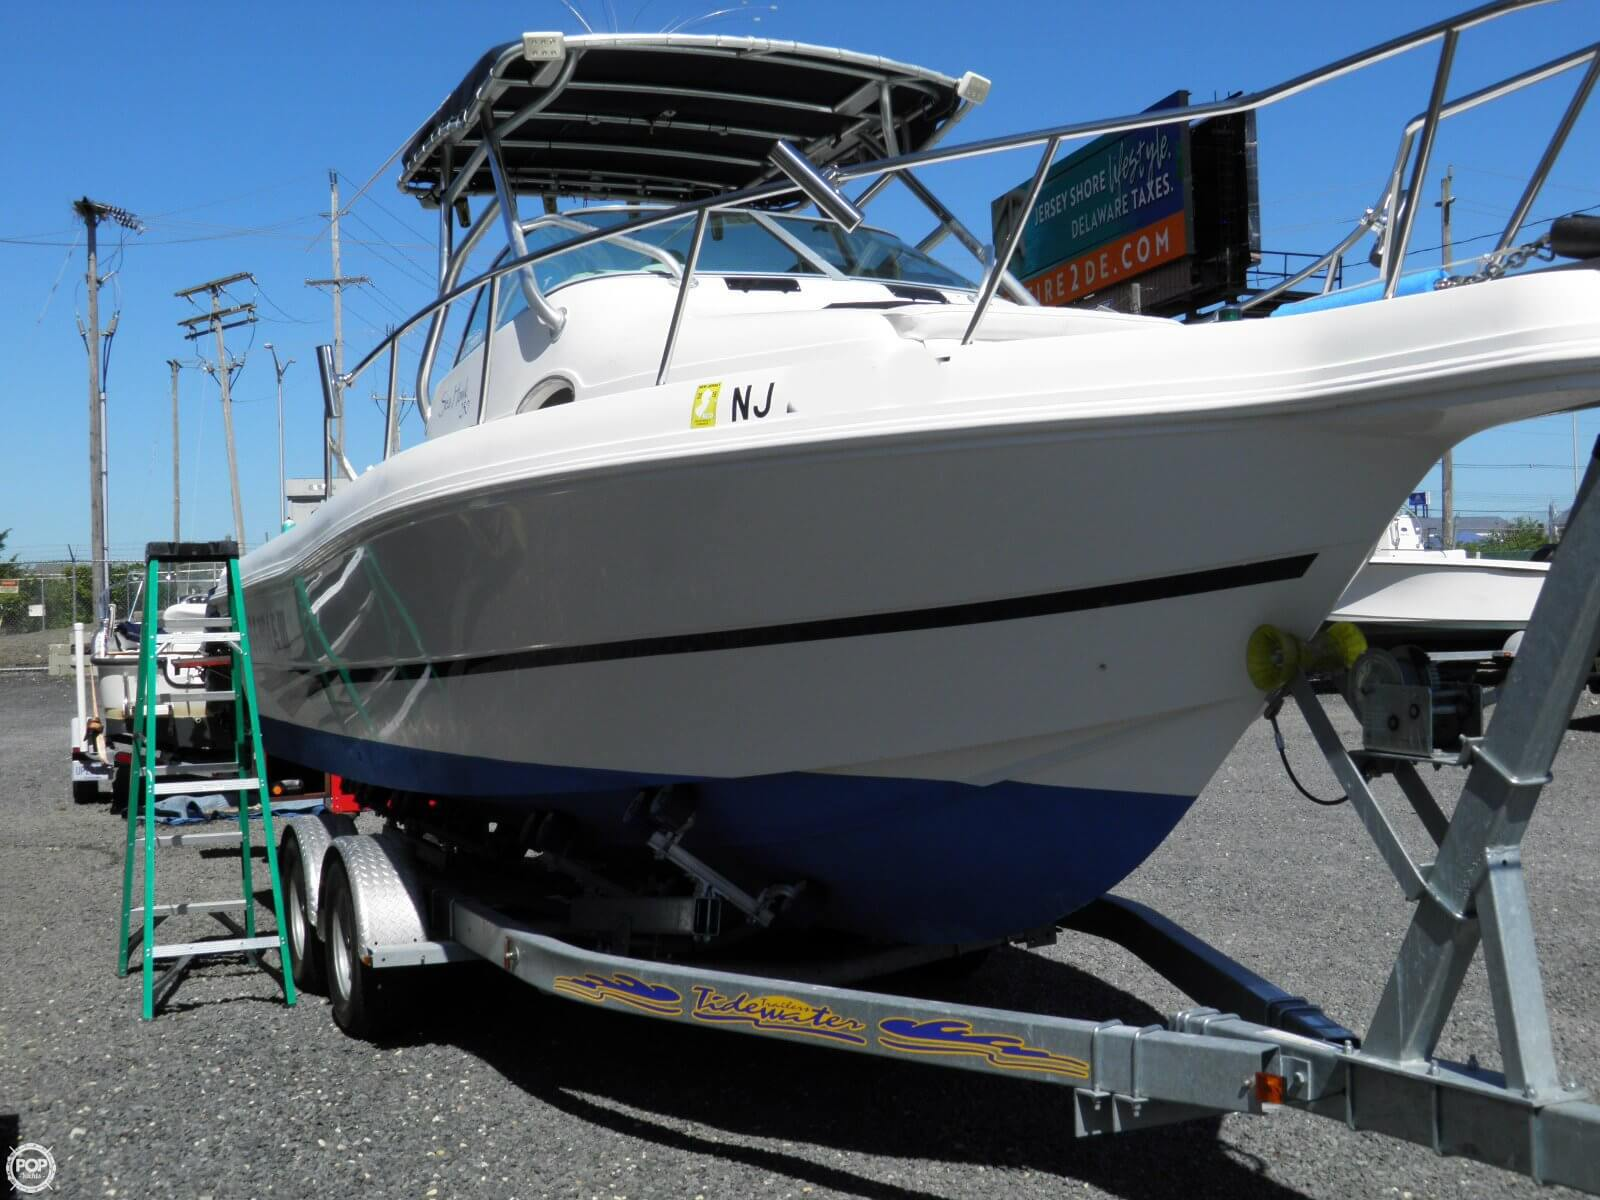 caravelle sea hawk 230 boat for sale in avon by the sea, nj for boat kill switch caravelle sea hawk 230 boat for sale in avon by the sea, nj for $29,999 069372